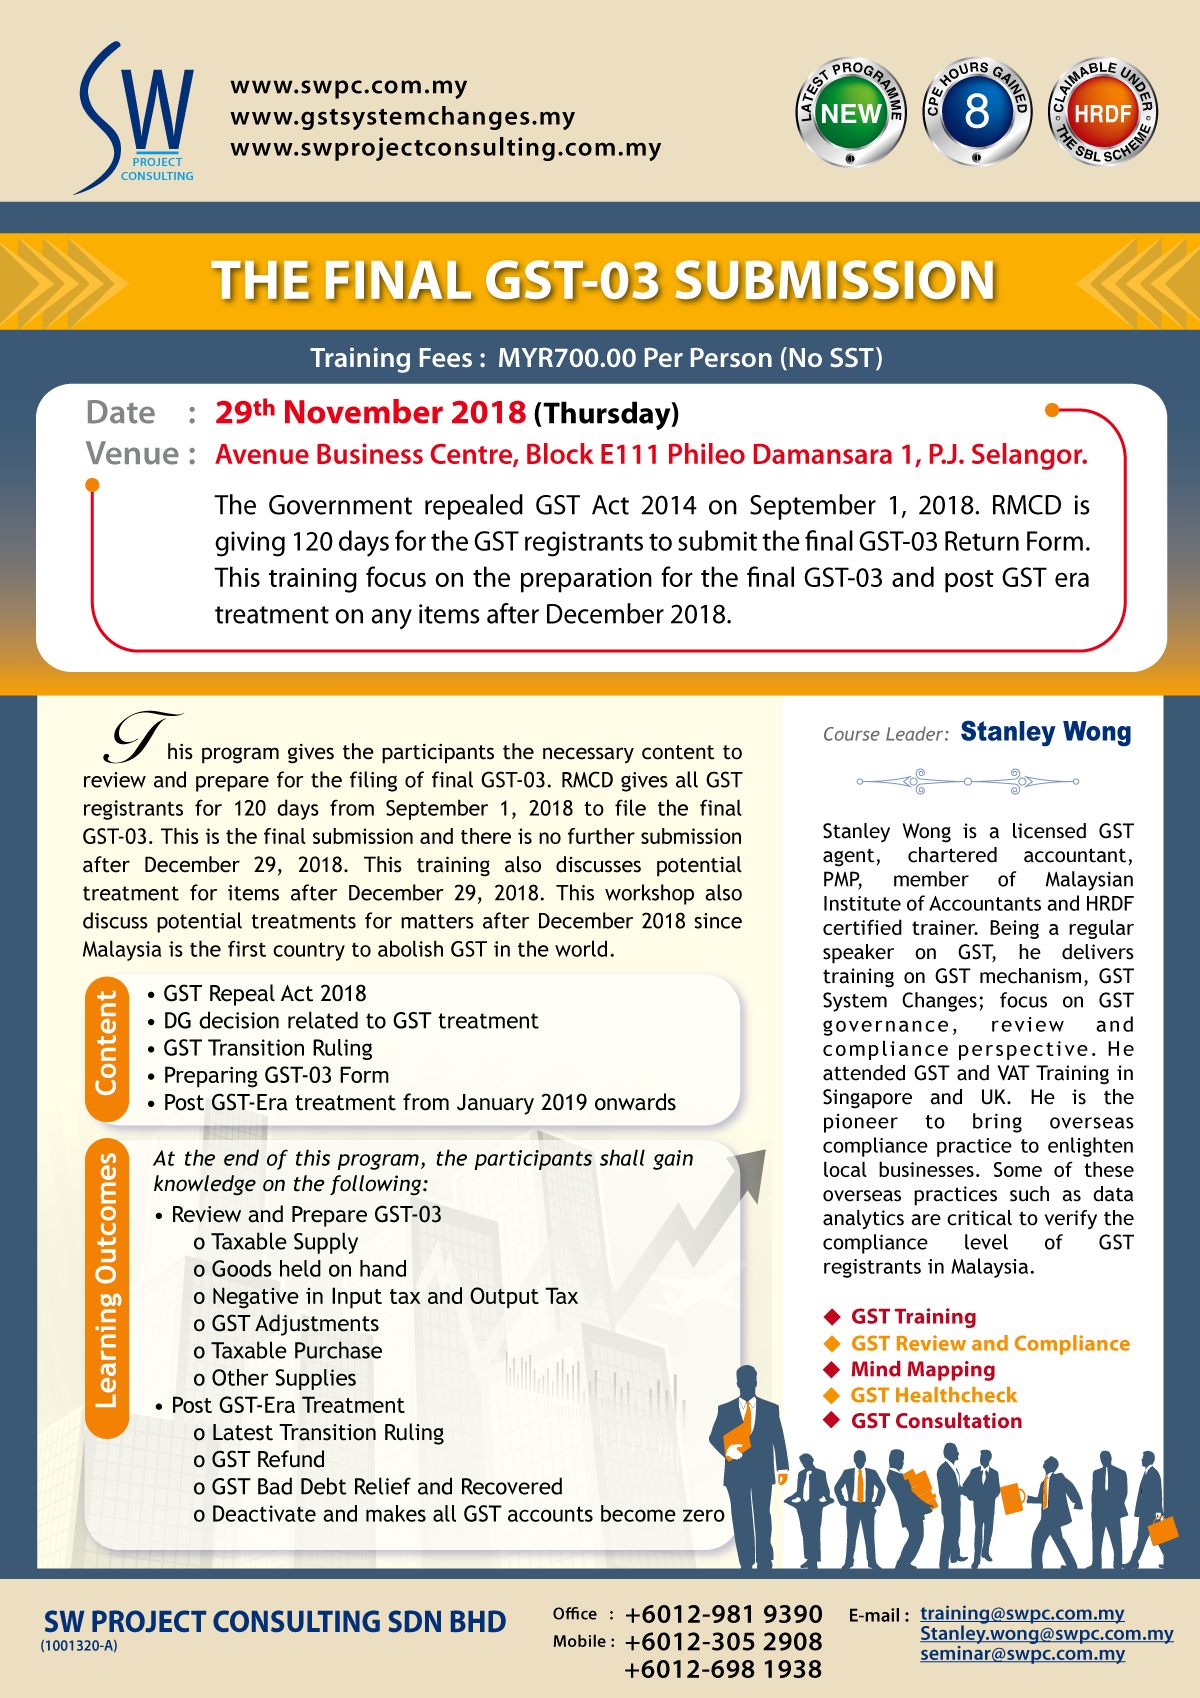 GST Workshop: The Final GST-03 Submission